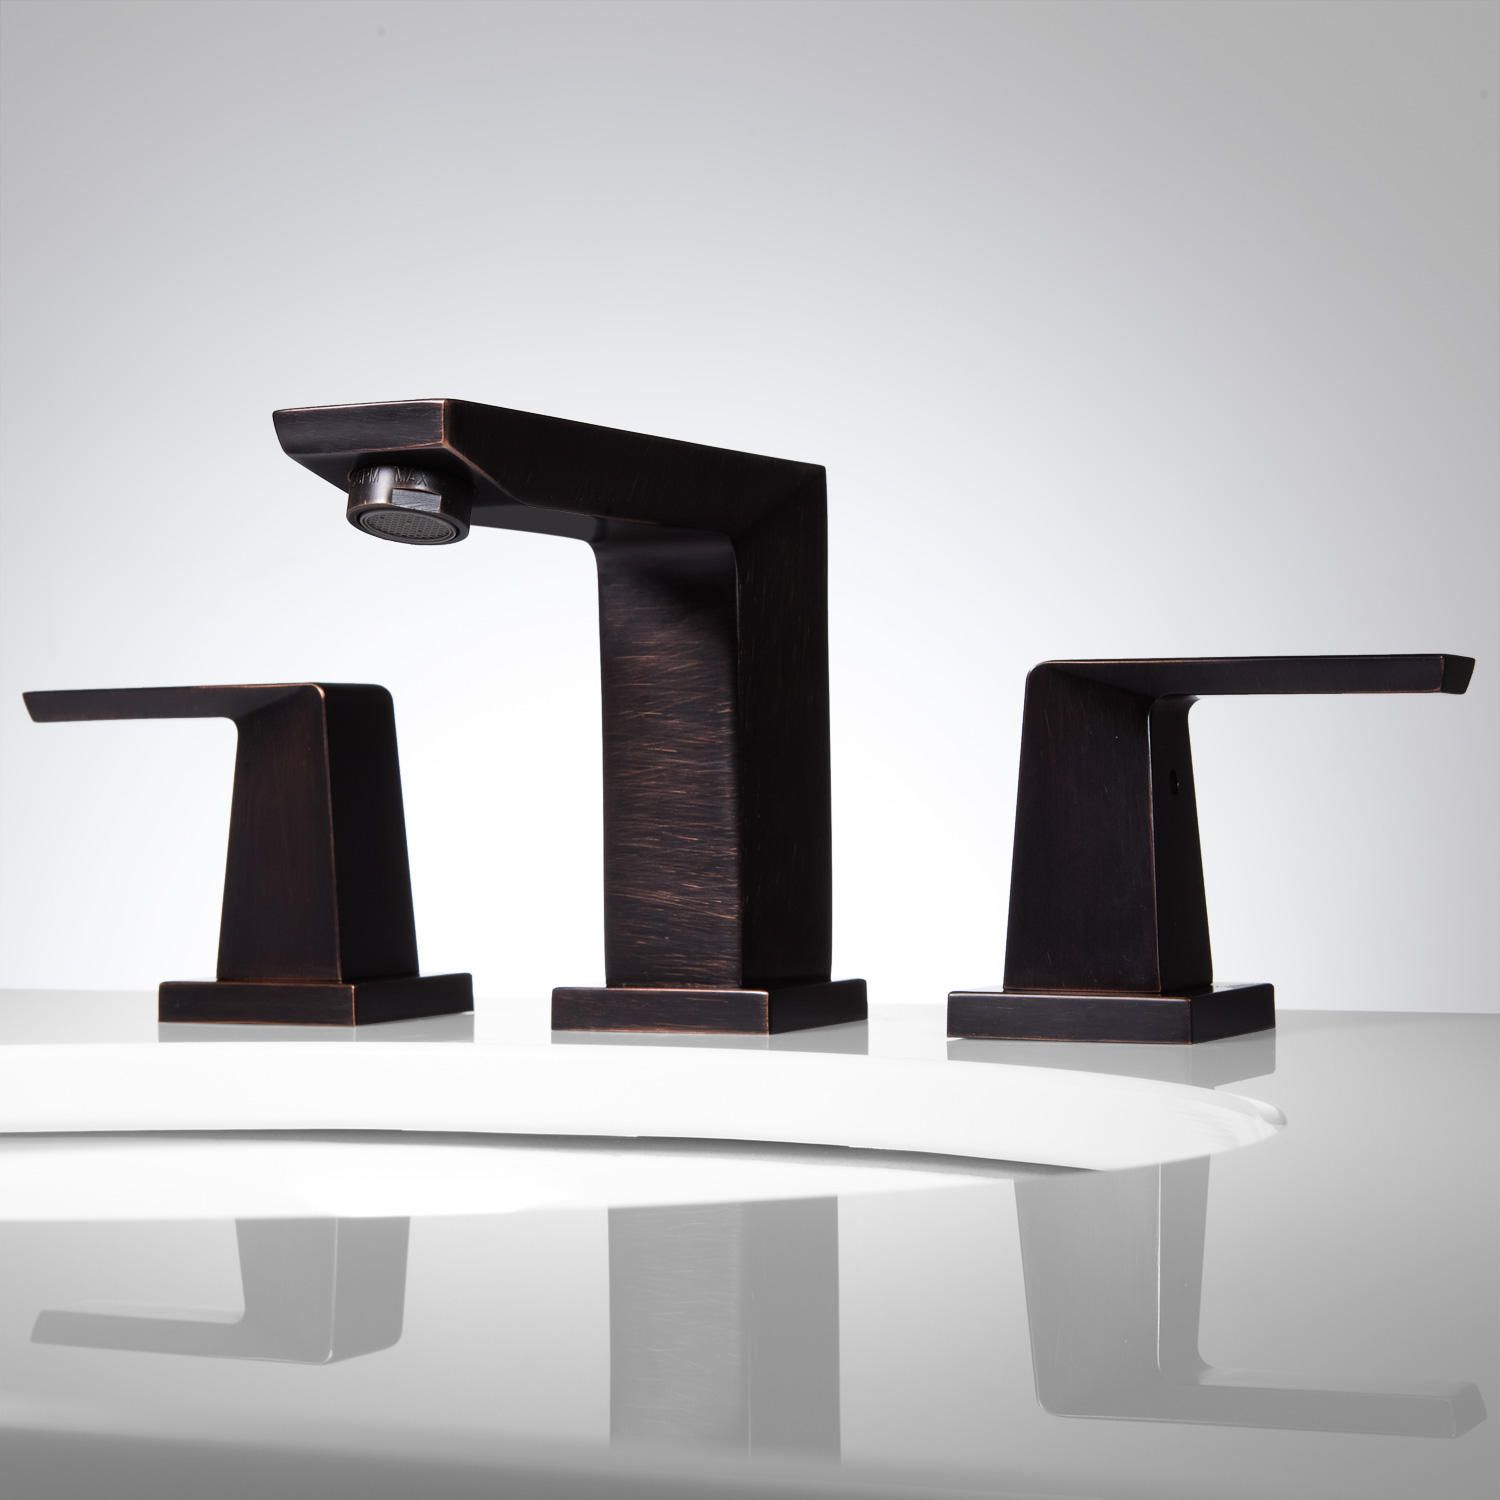 Crisscross Widespread Bathroom Faucet - Lever Handles | Widespread ...